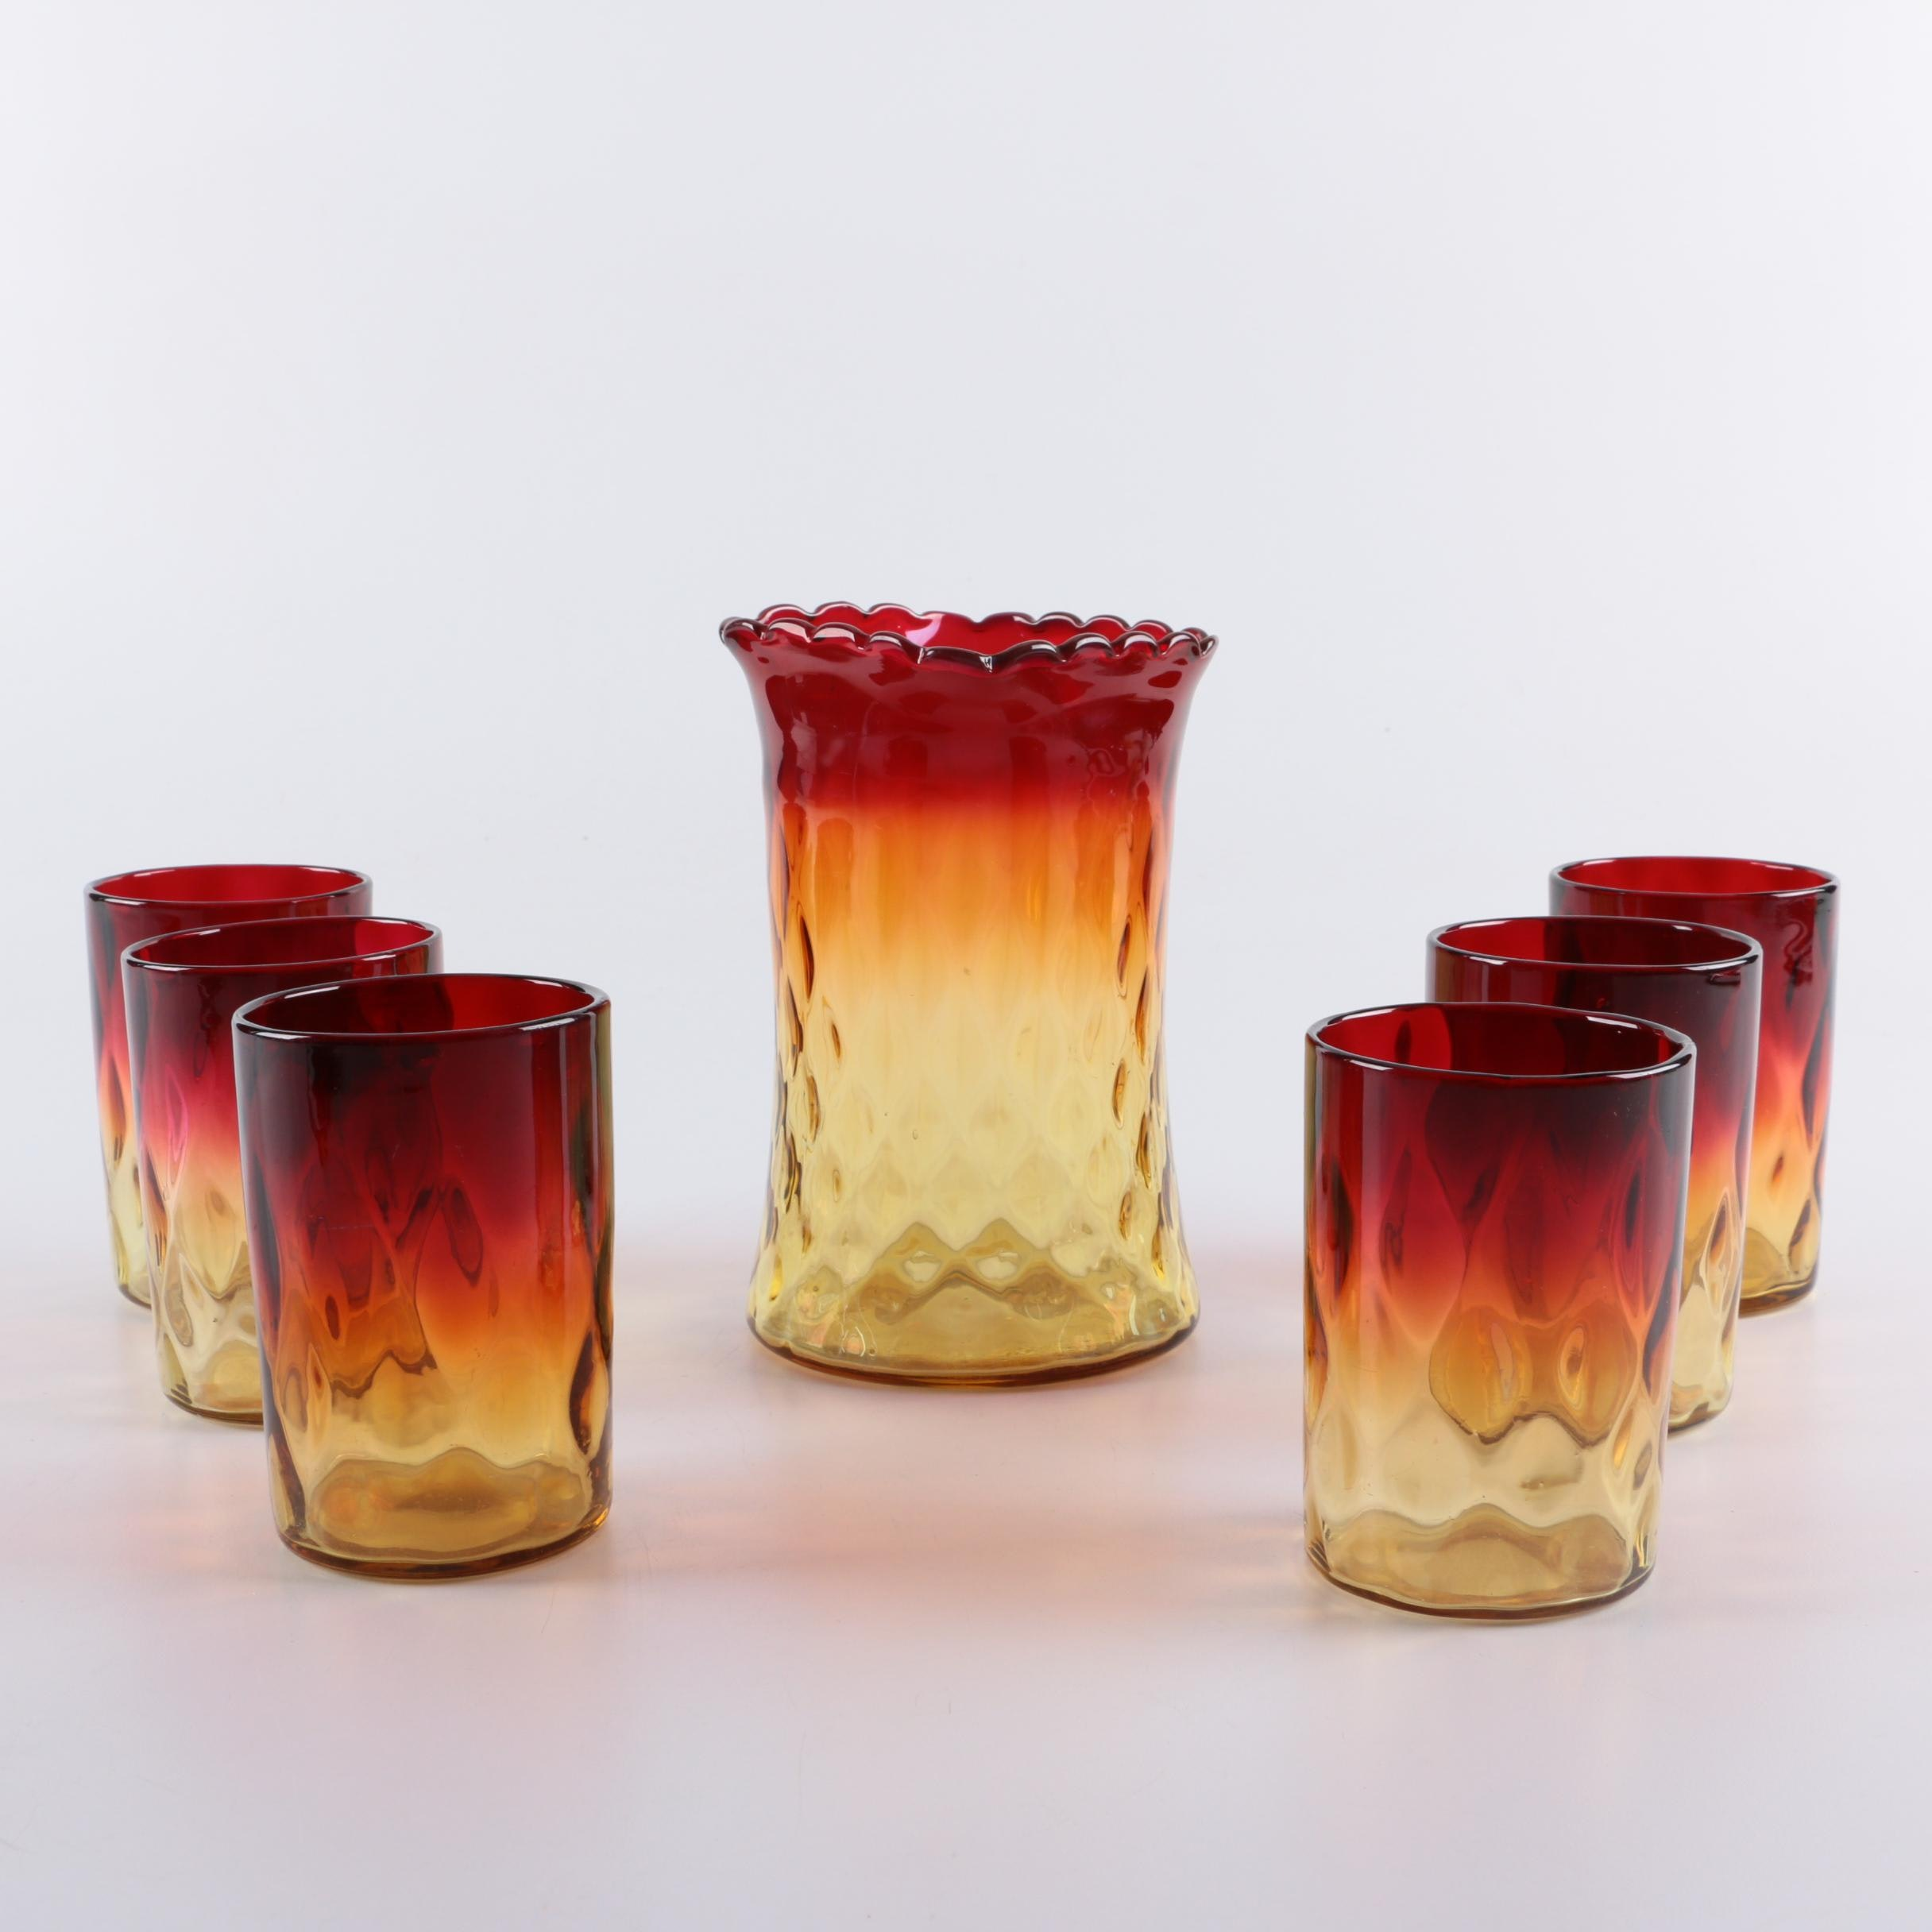 Antique Amberina Glass Tumblers and Vase